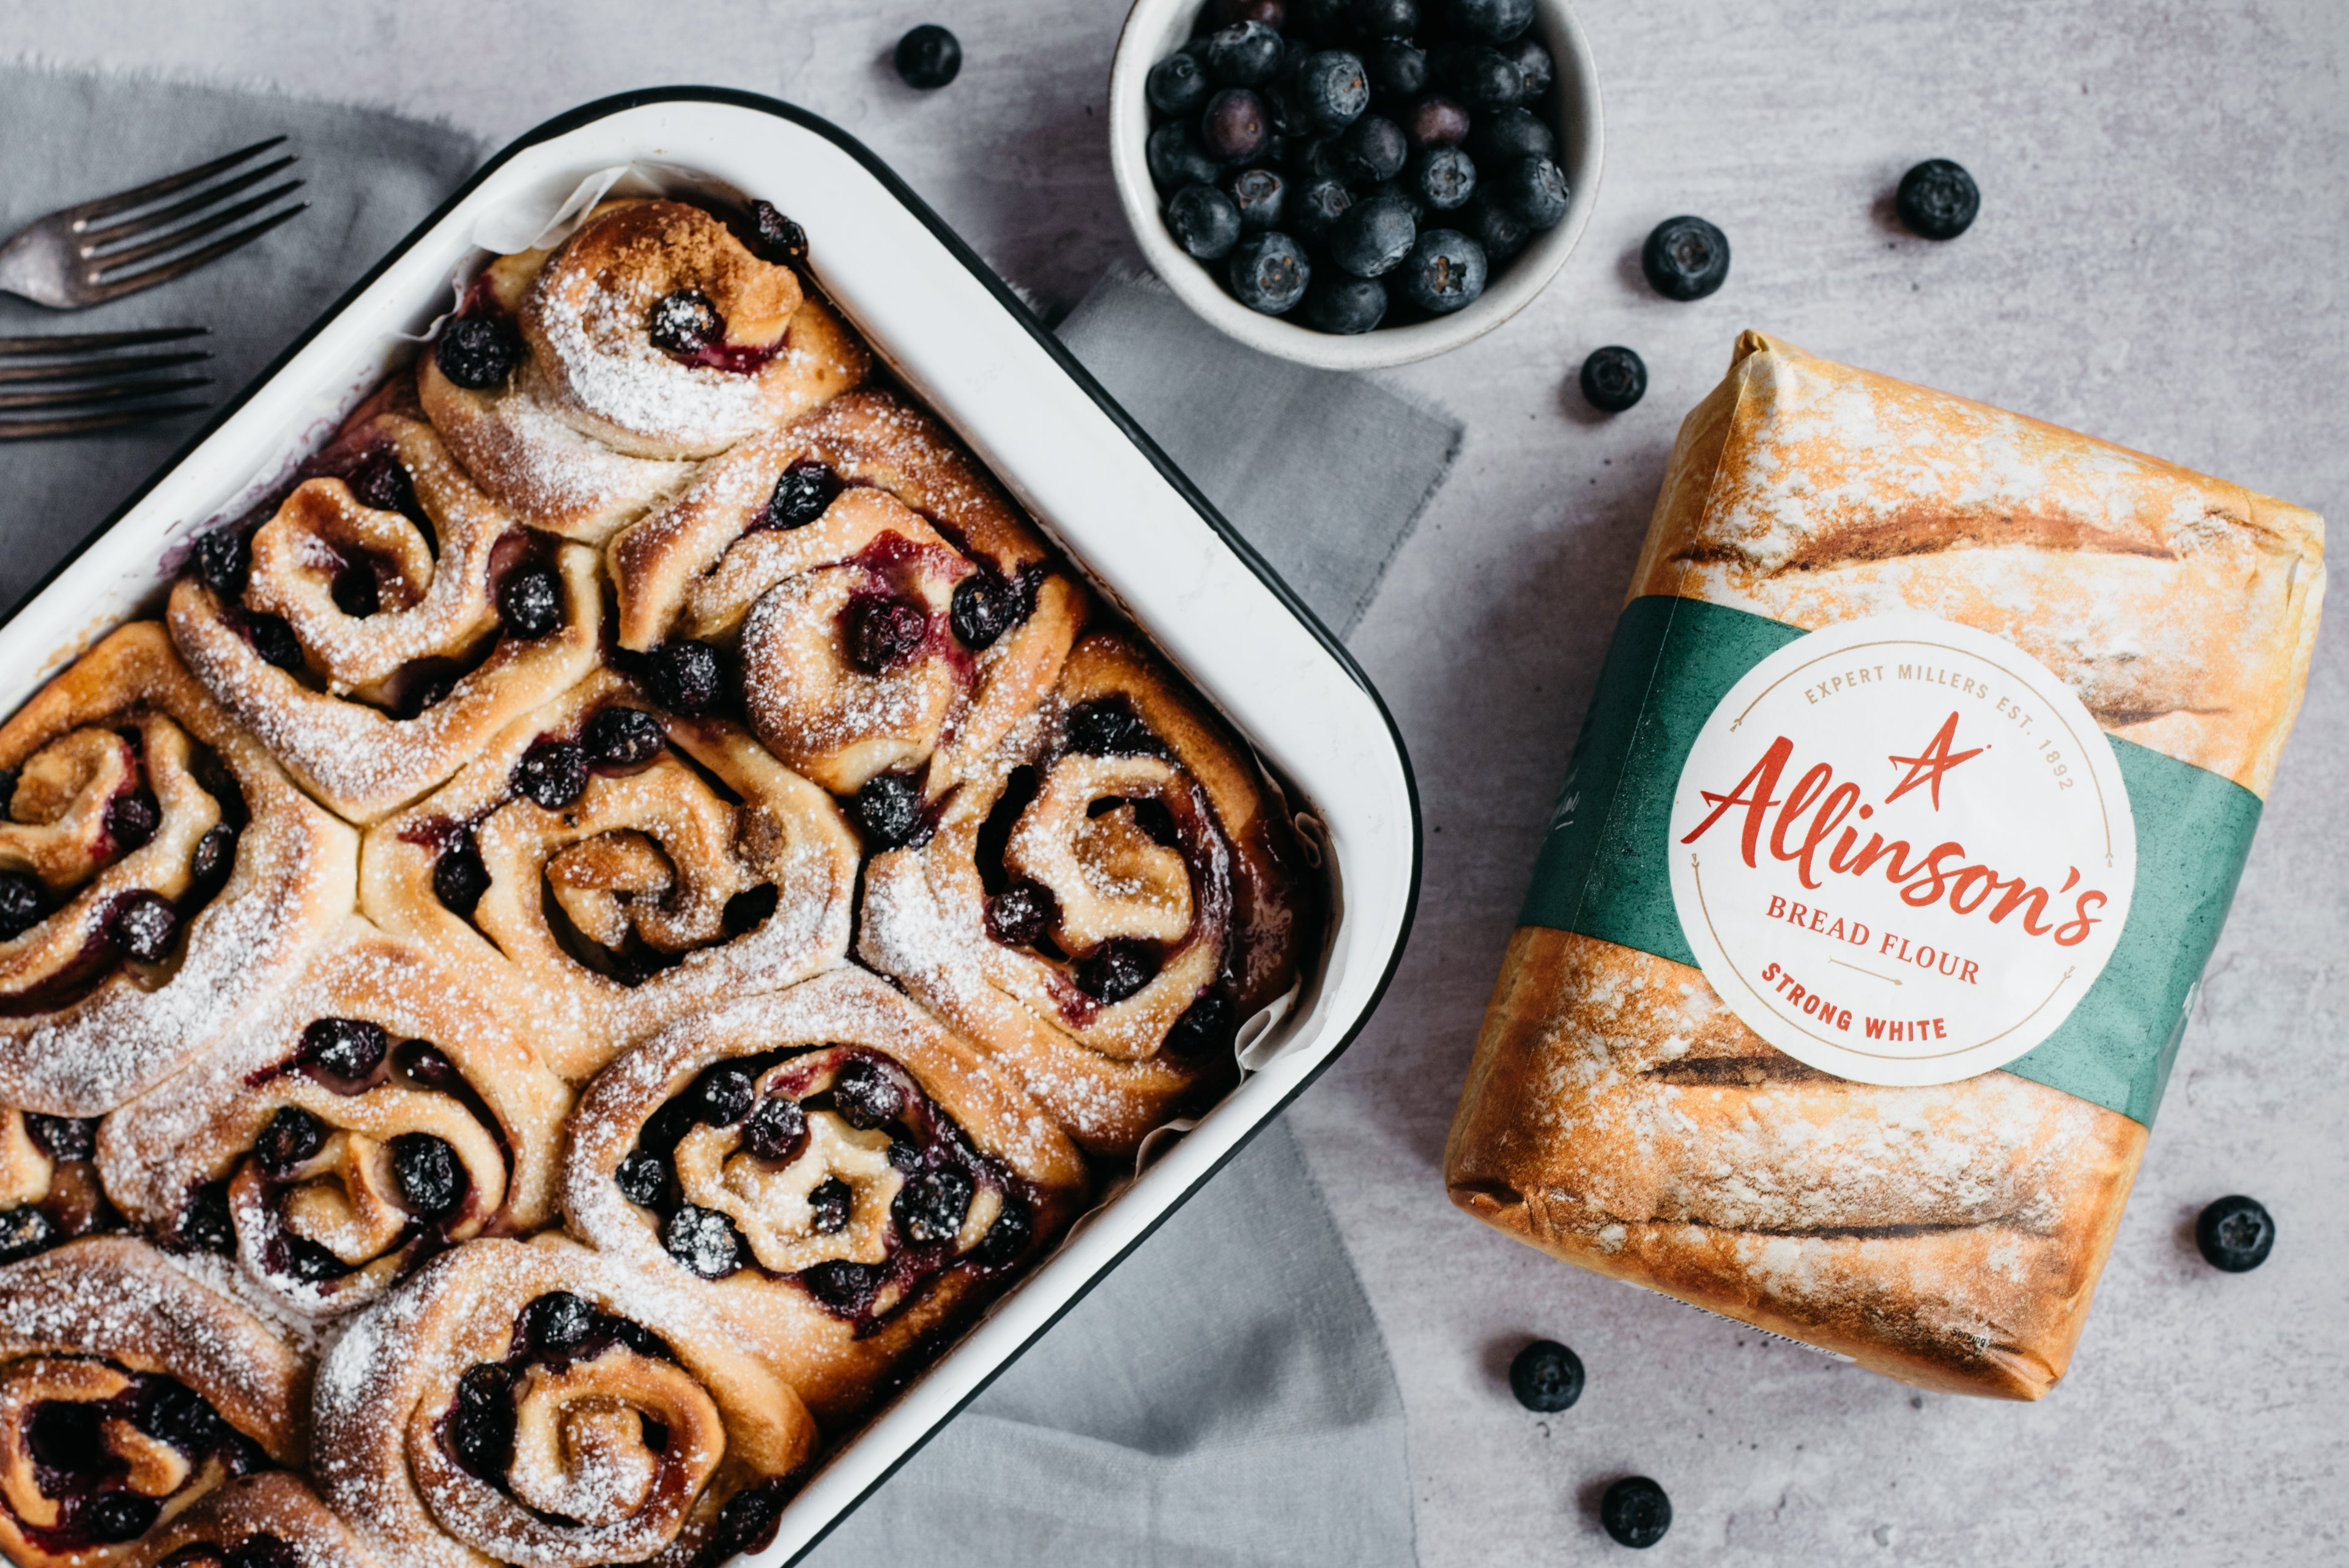 Tray of blueberry and vanilla rolls, dusted with sugar, next to a bag of Allinson's Flour and bowl of blueberries